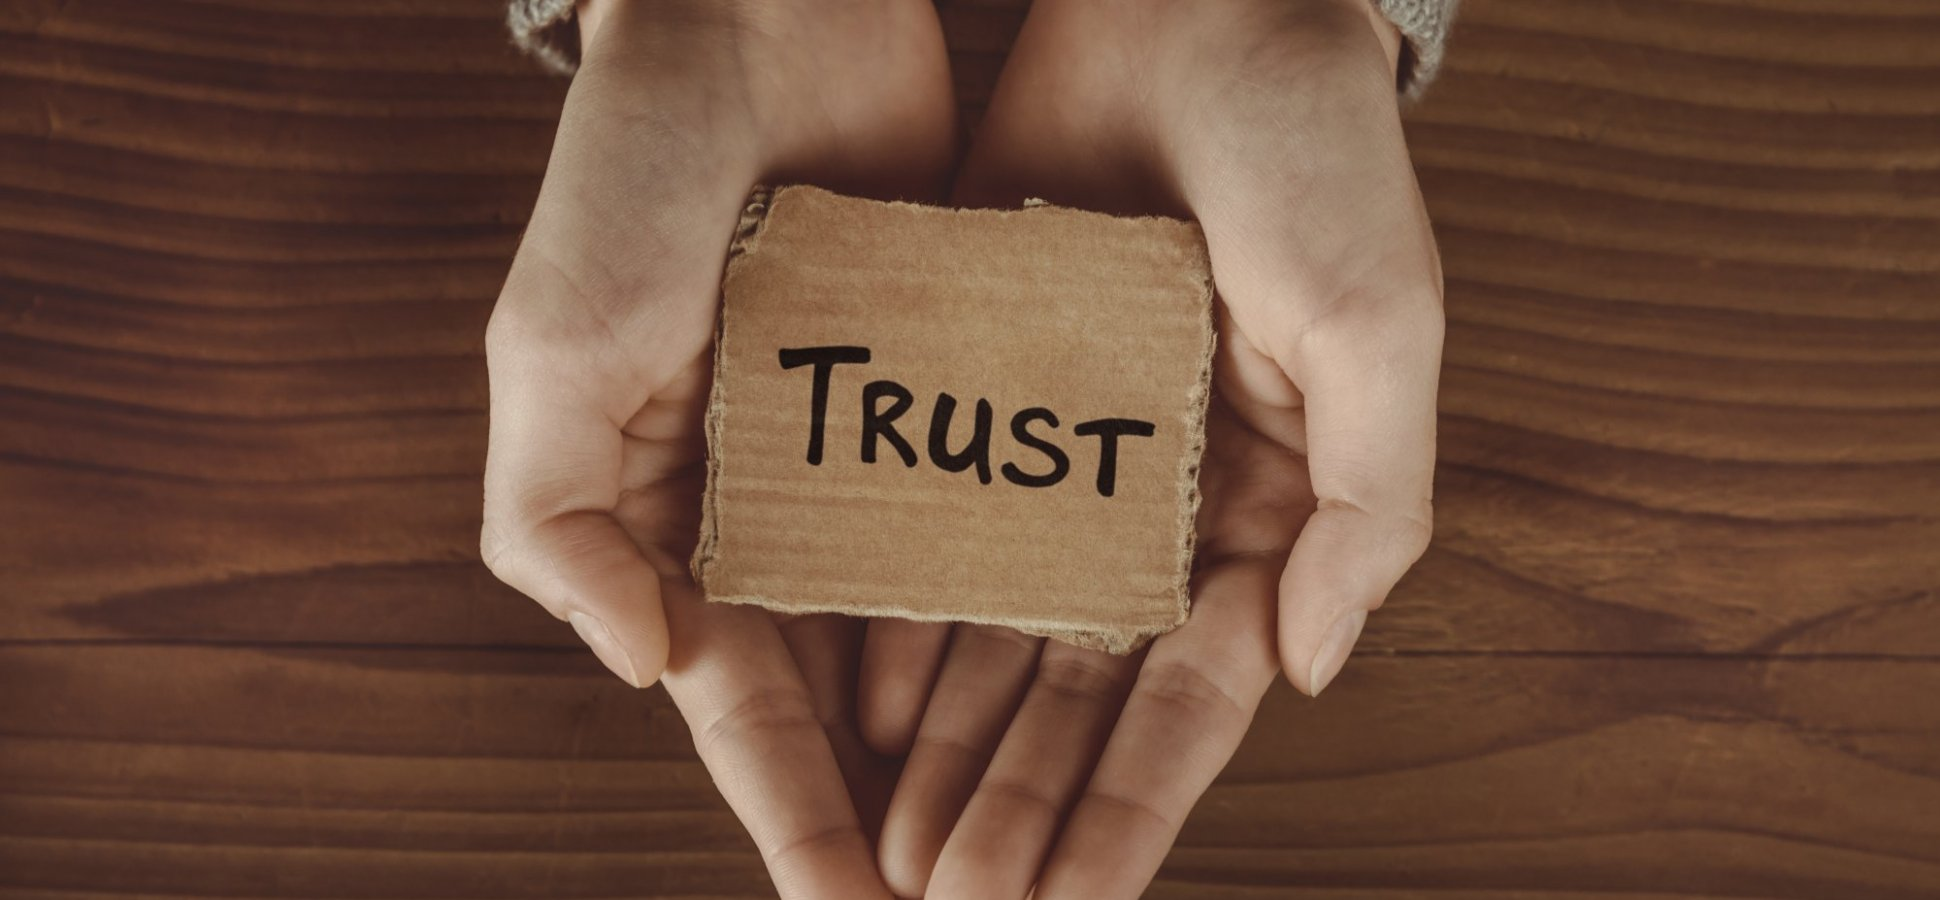 This 1 Simple Rule Will Help You Build the Trust Your Team Needs